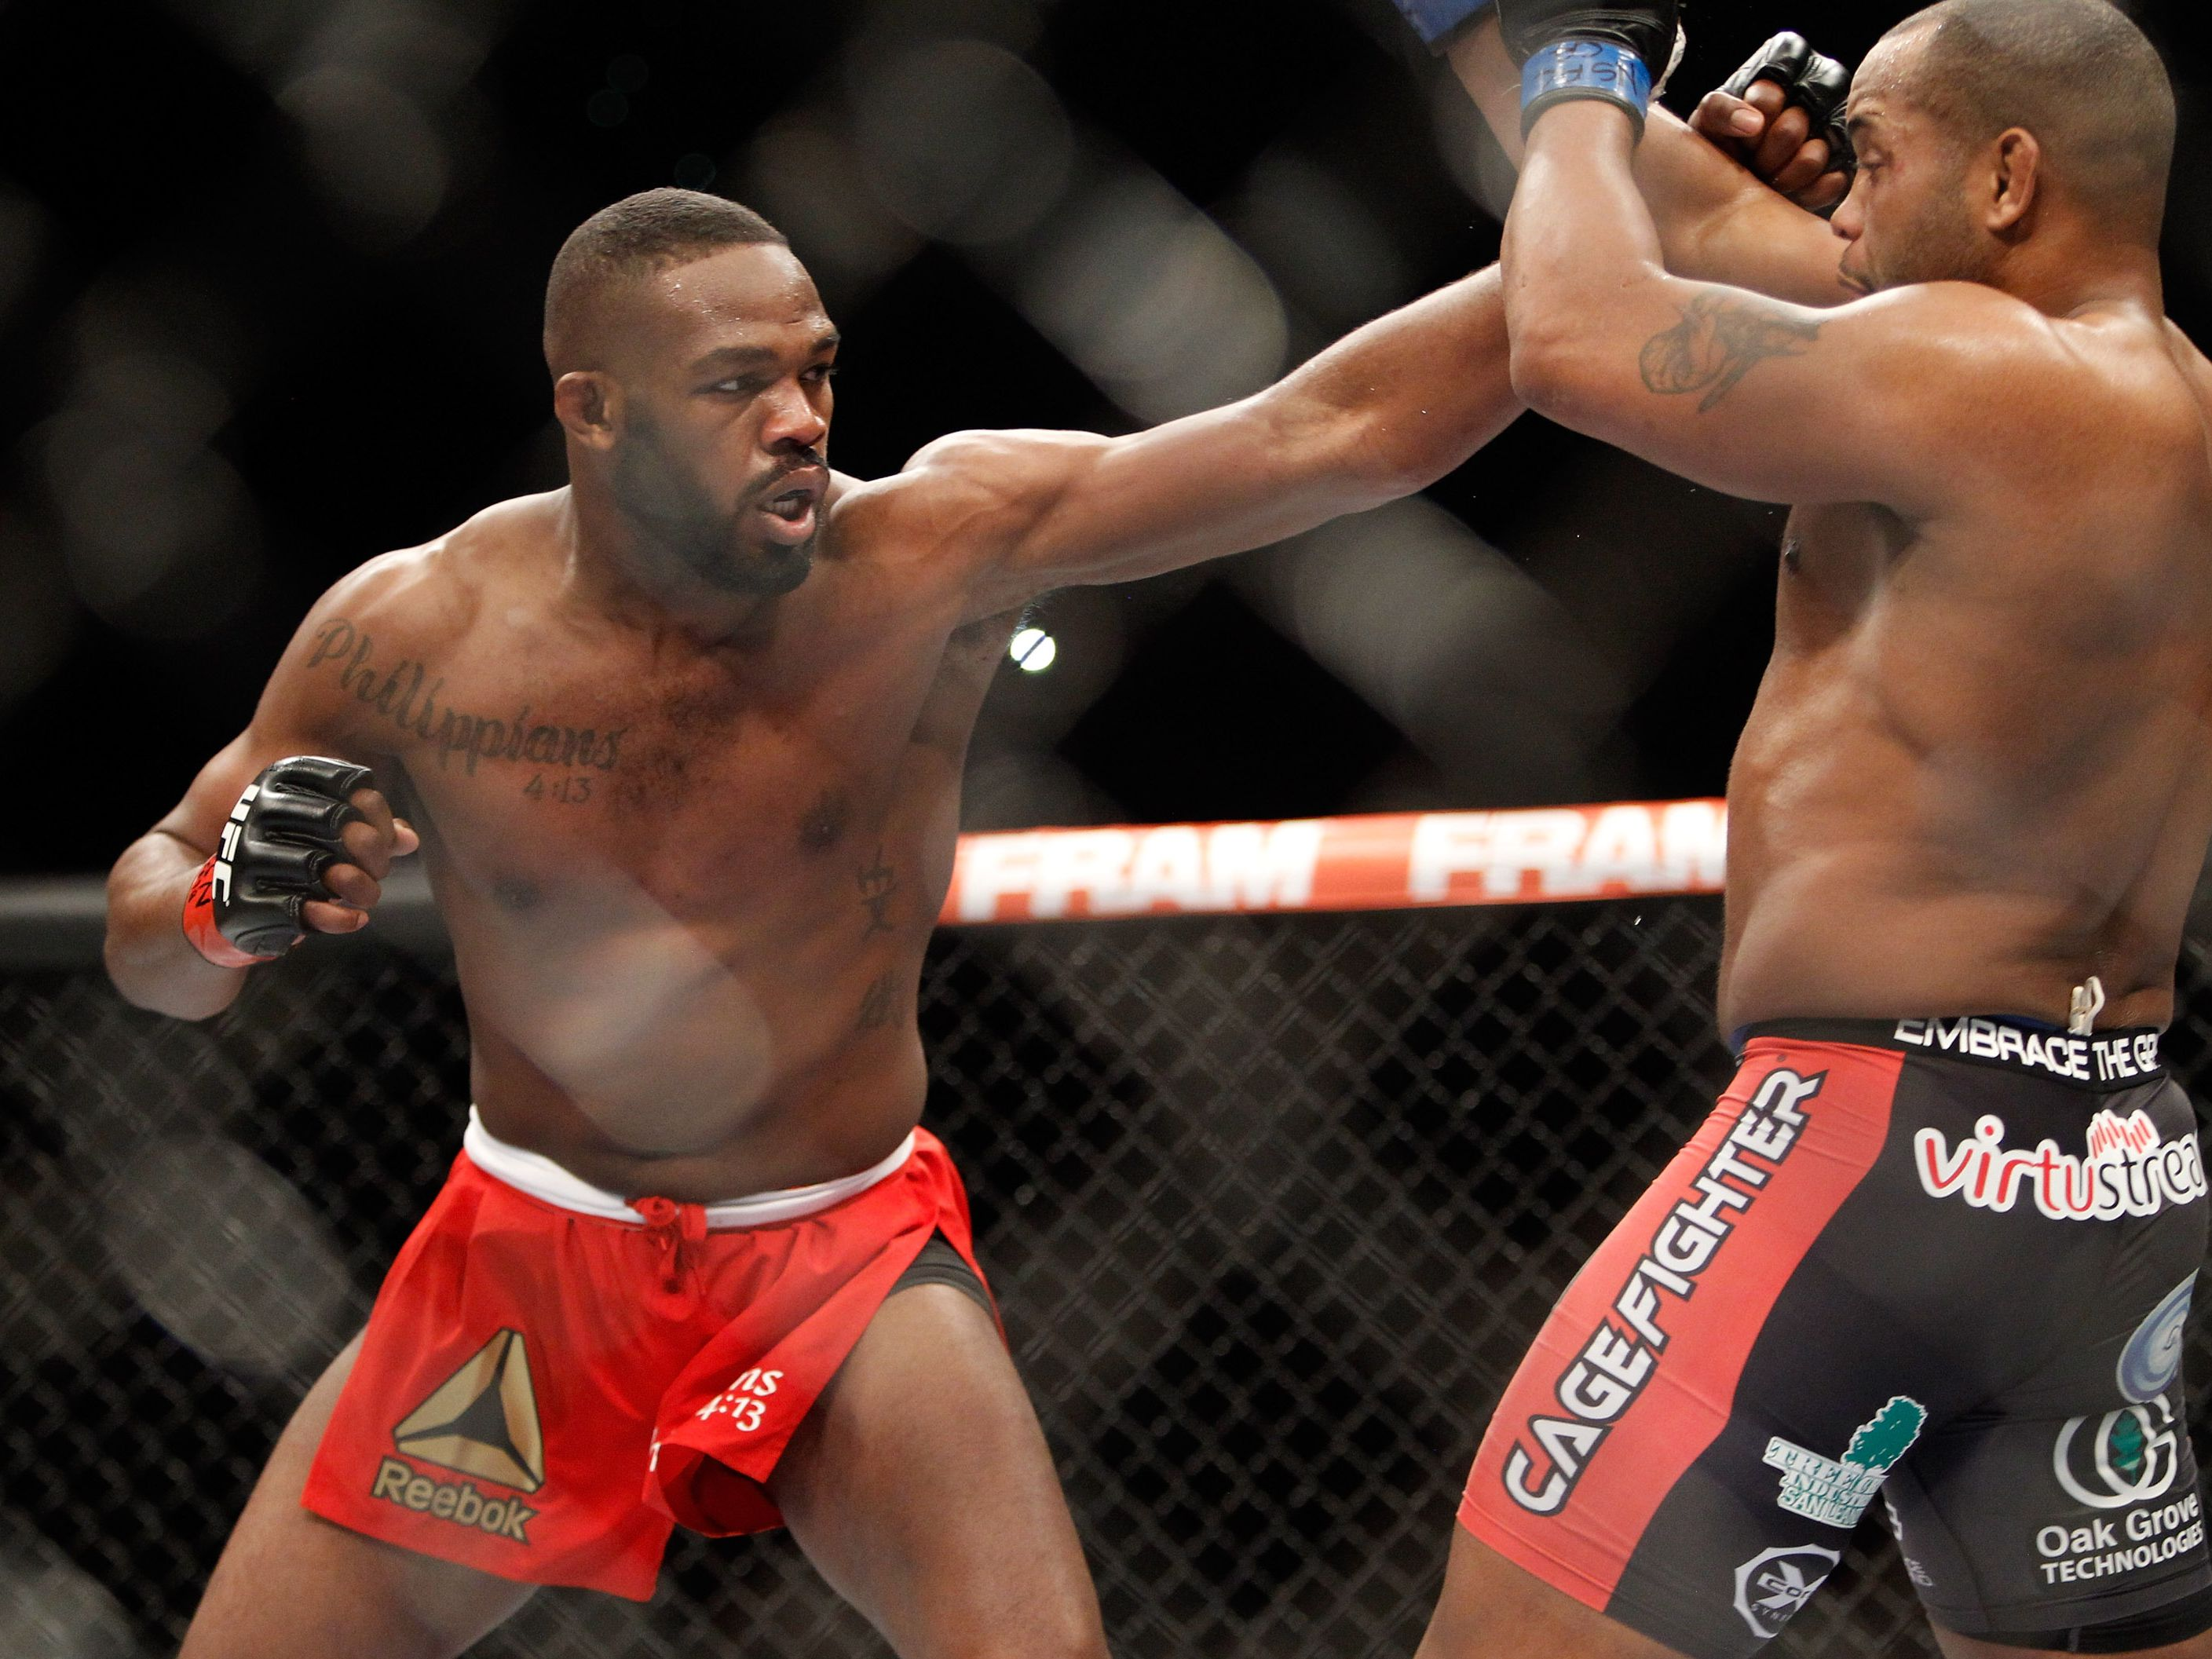 A Brief Biography and Profile of Jon Jones